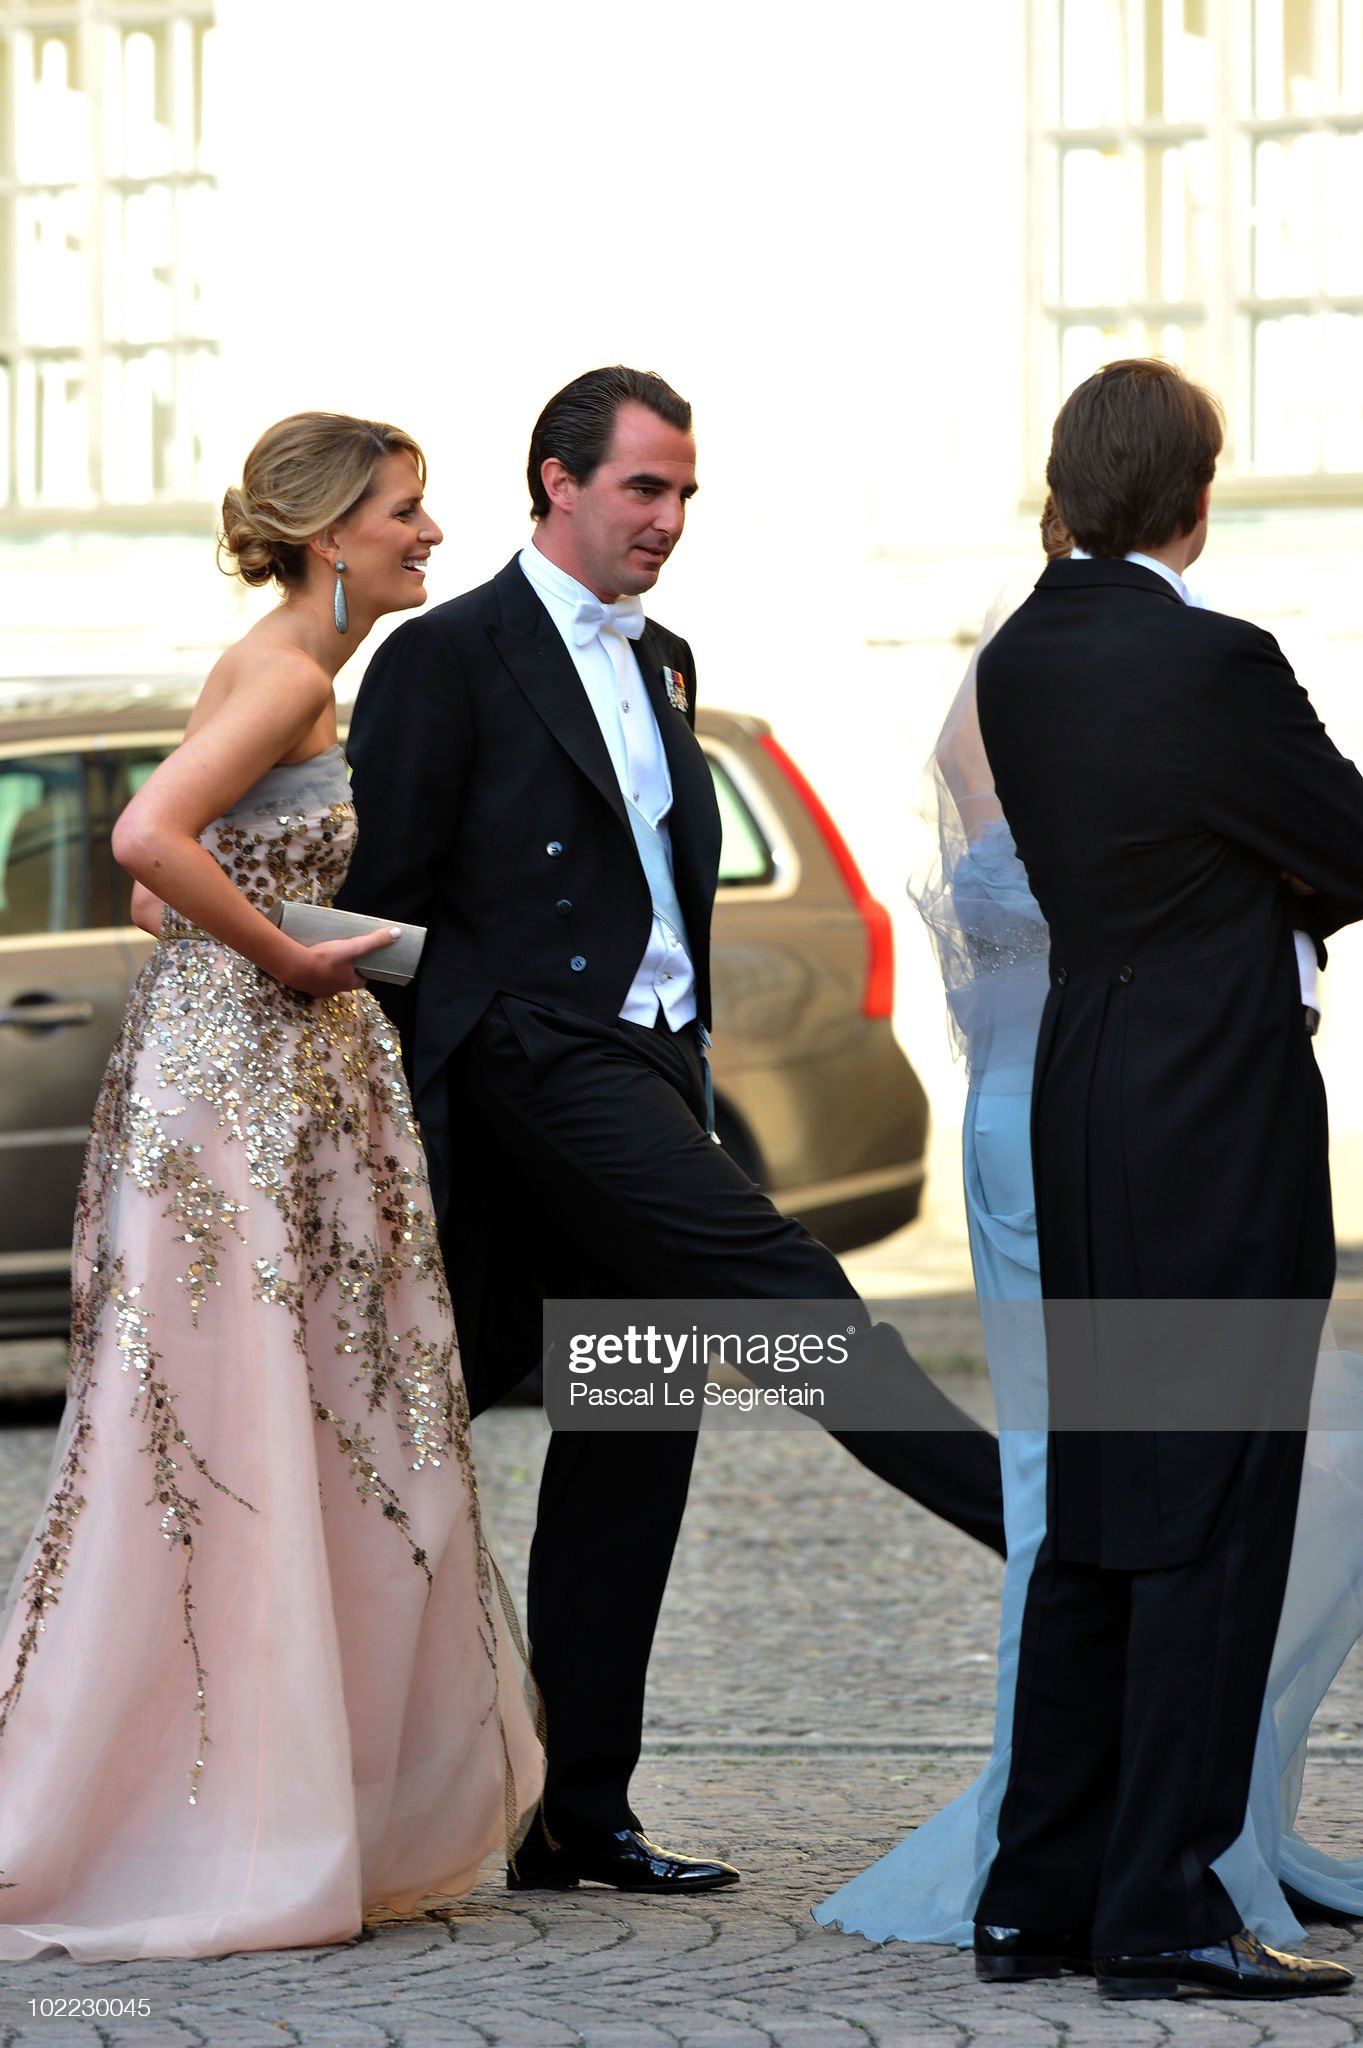 Wedding Of Swedish Crown Princess Victoria & Daniel Westling: Banquet - Arrivals : News Photo